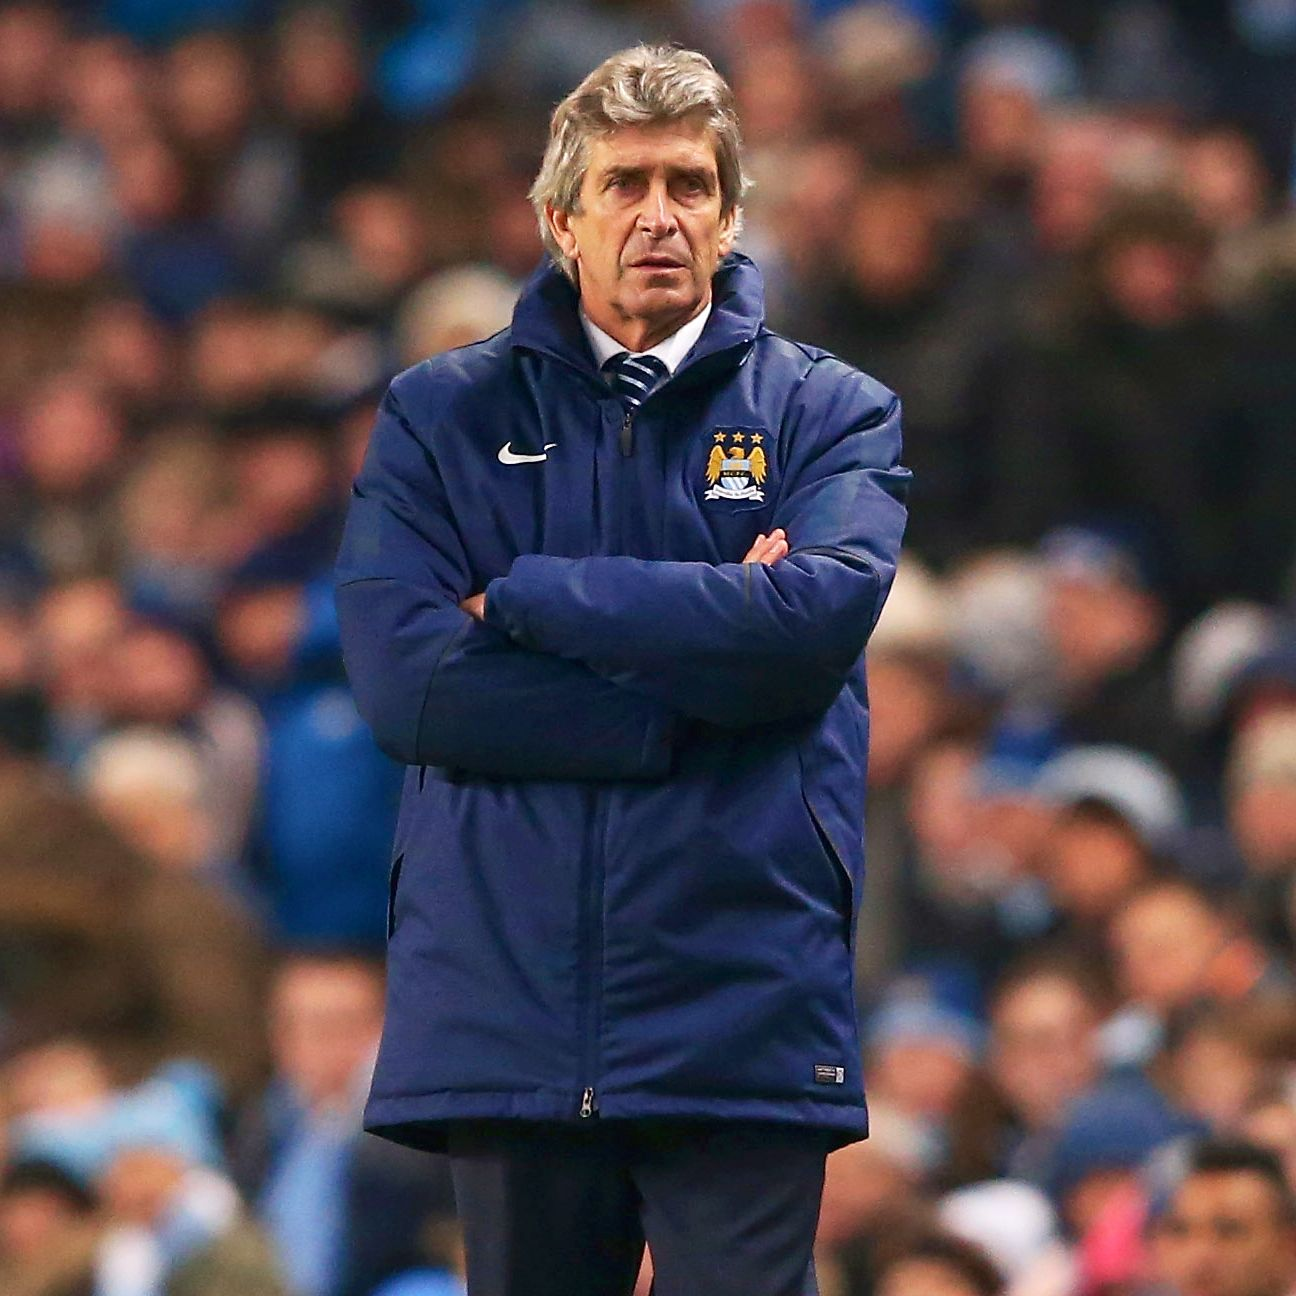 Manuel Pellegrini's Manchester City face a seven-point gap between themselves and leaders Chelsea.